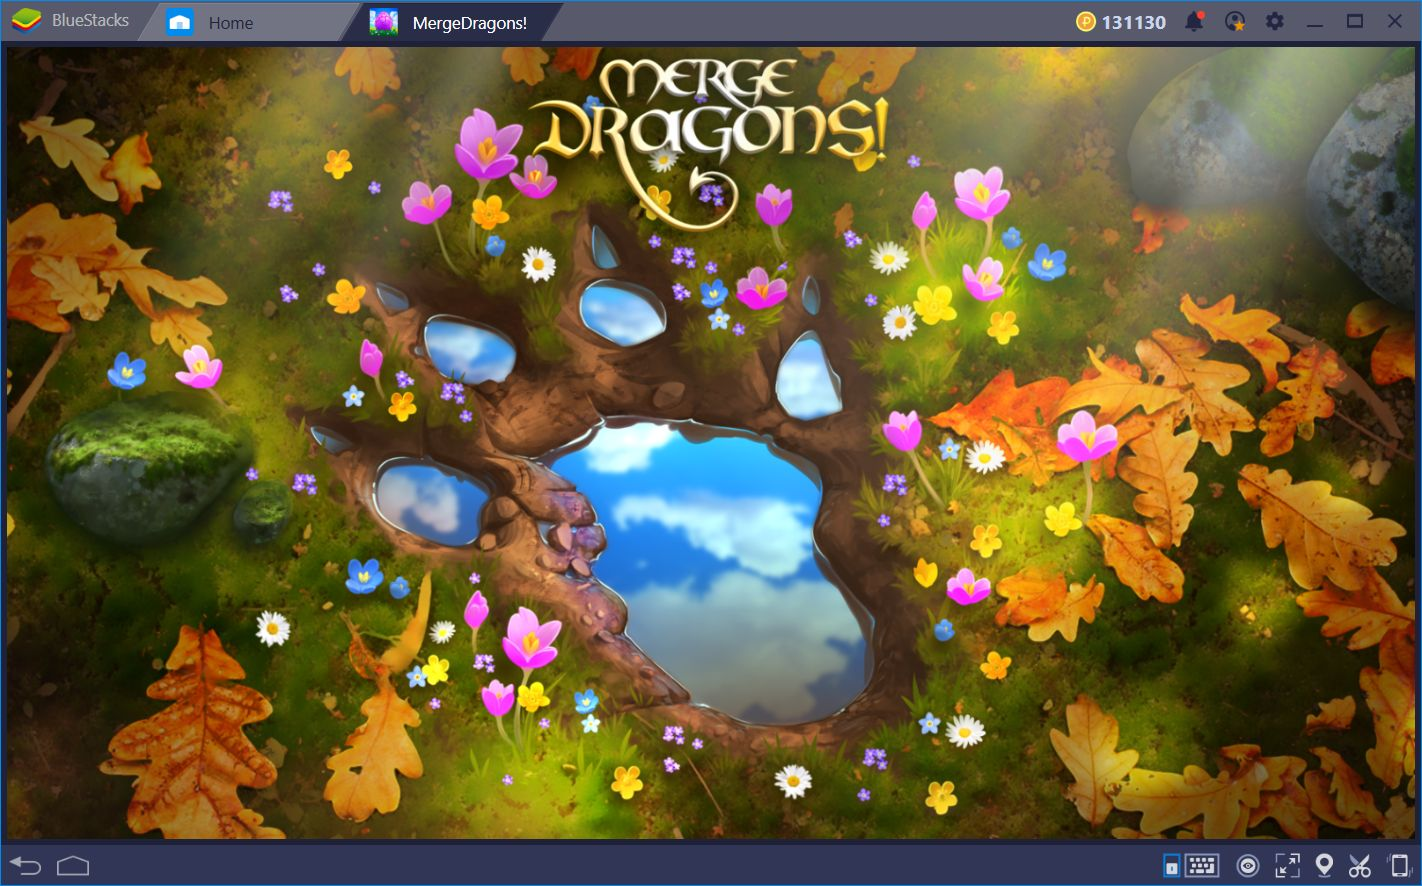 5 Games to Play on BlueStacks for GoT Fans: Winter is Here!